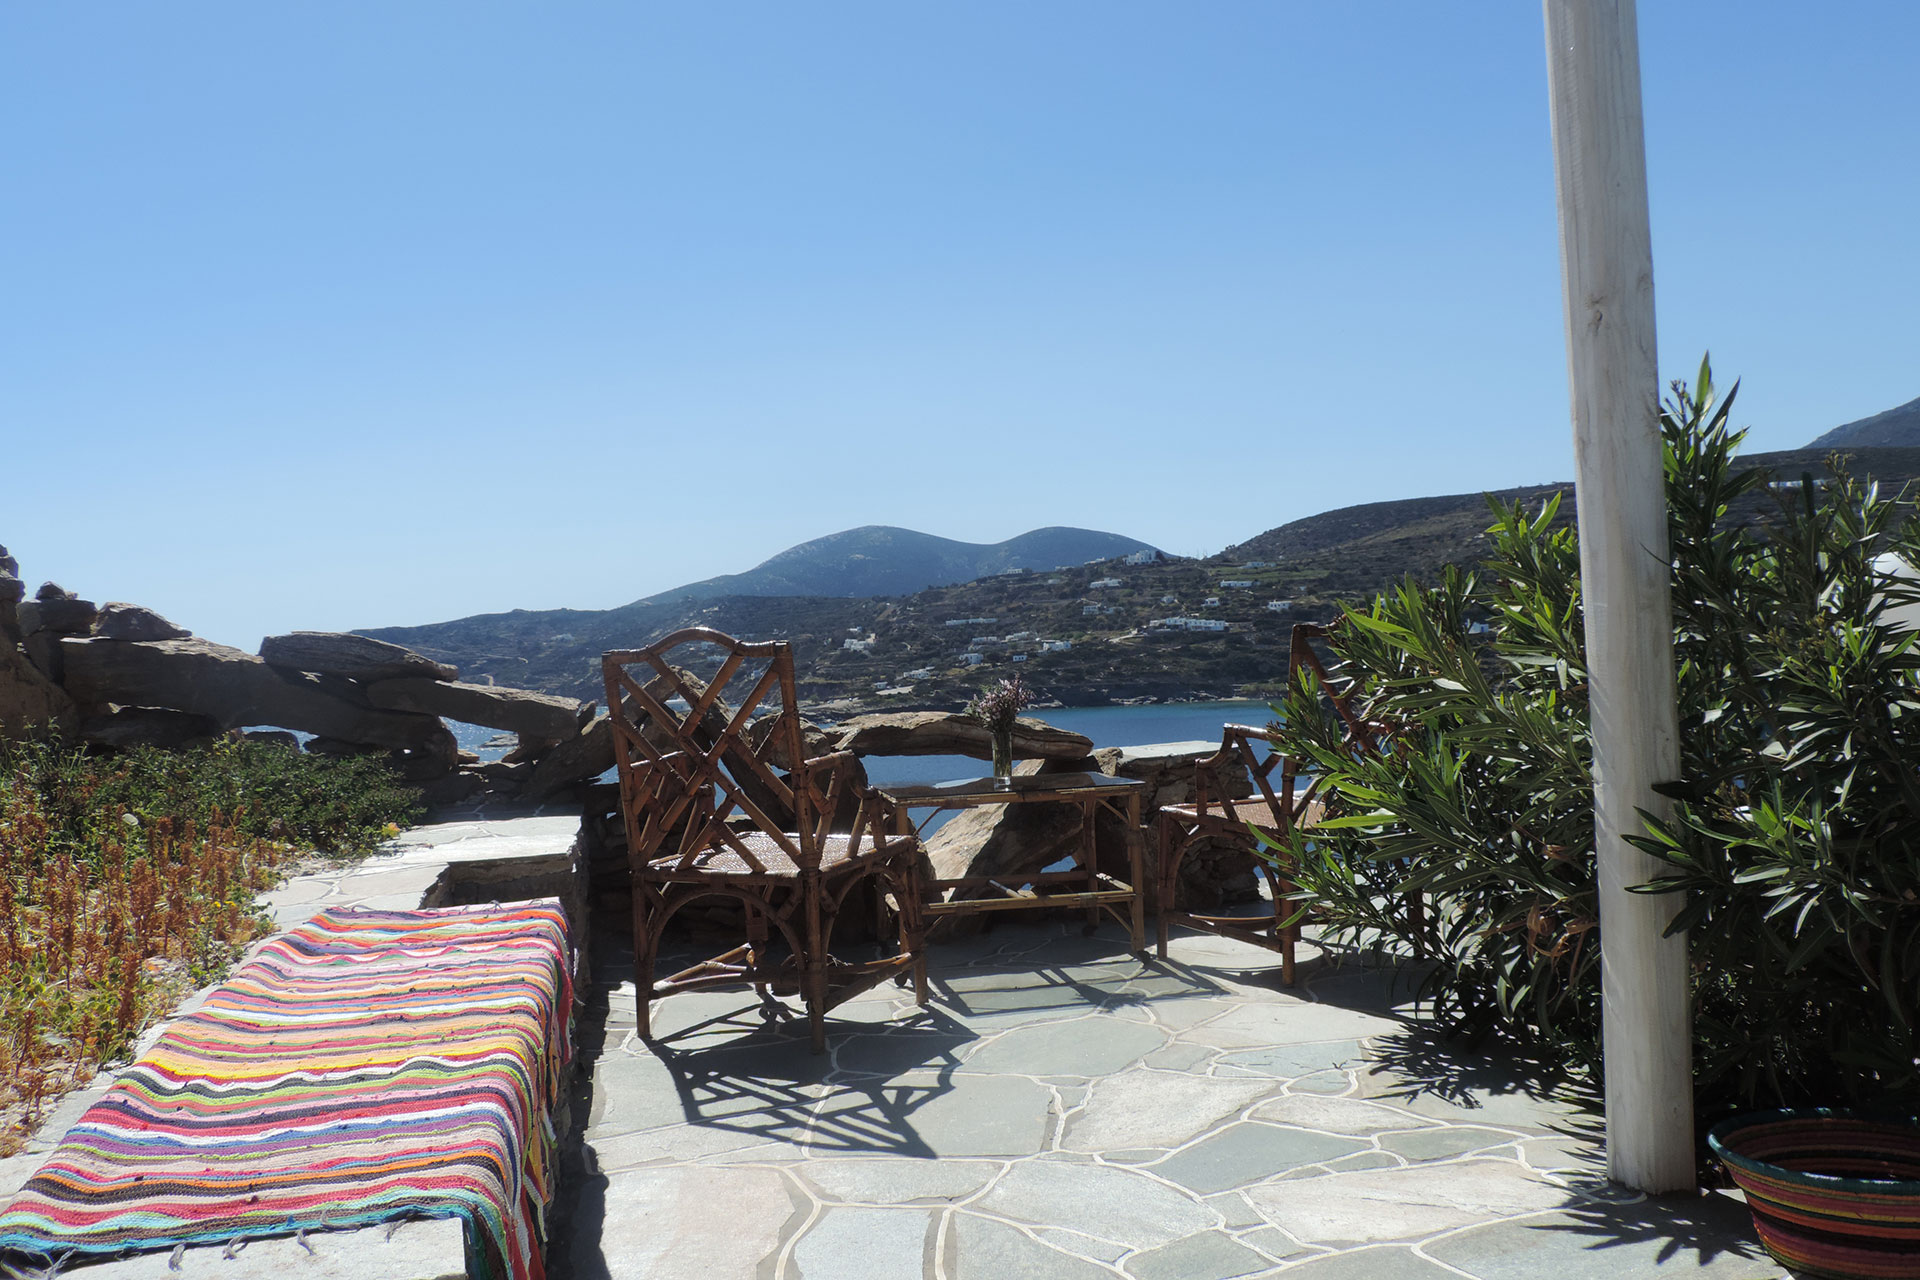 The patio of Thimari traditional house at Sifnos